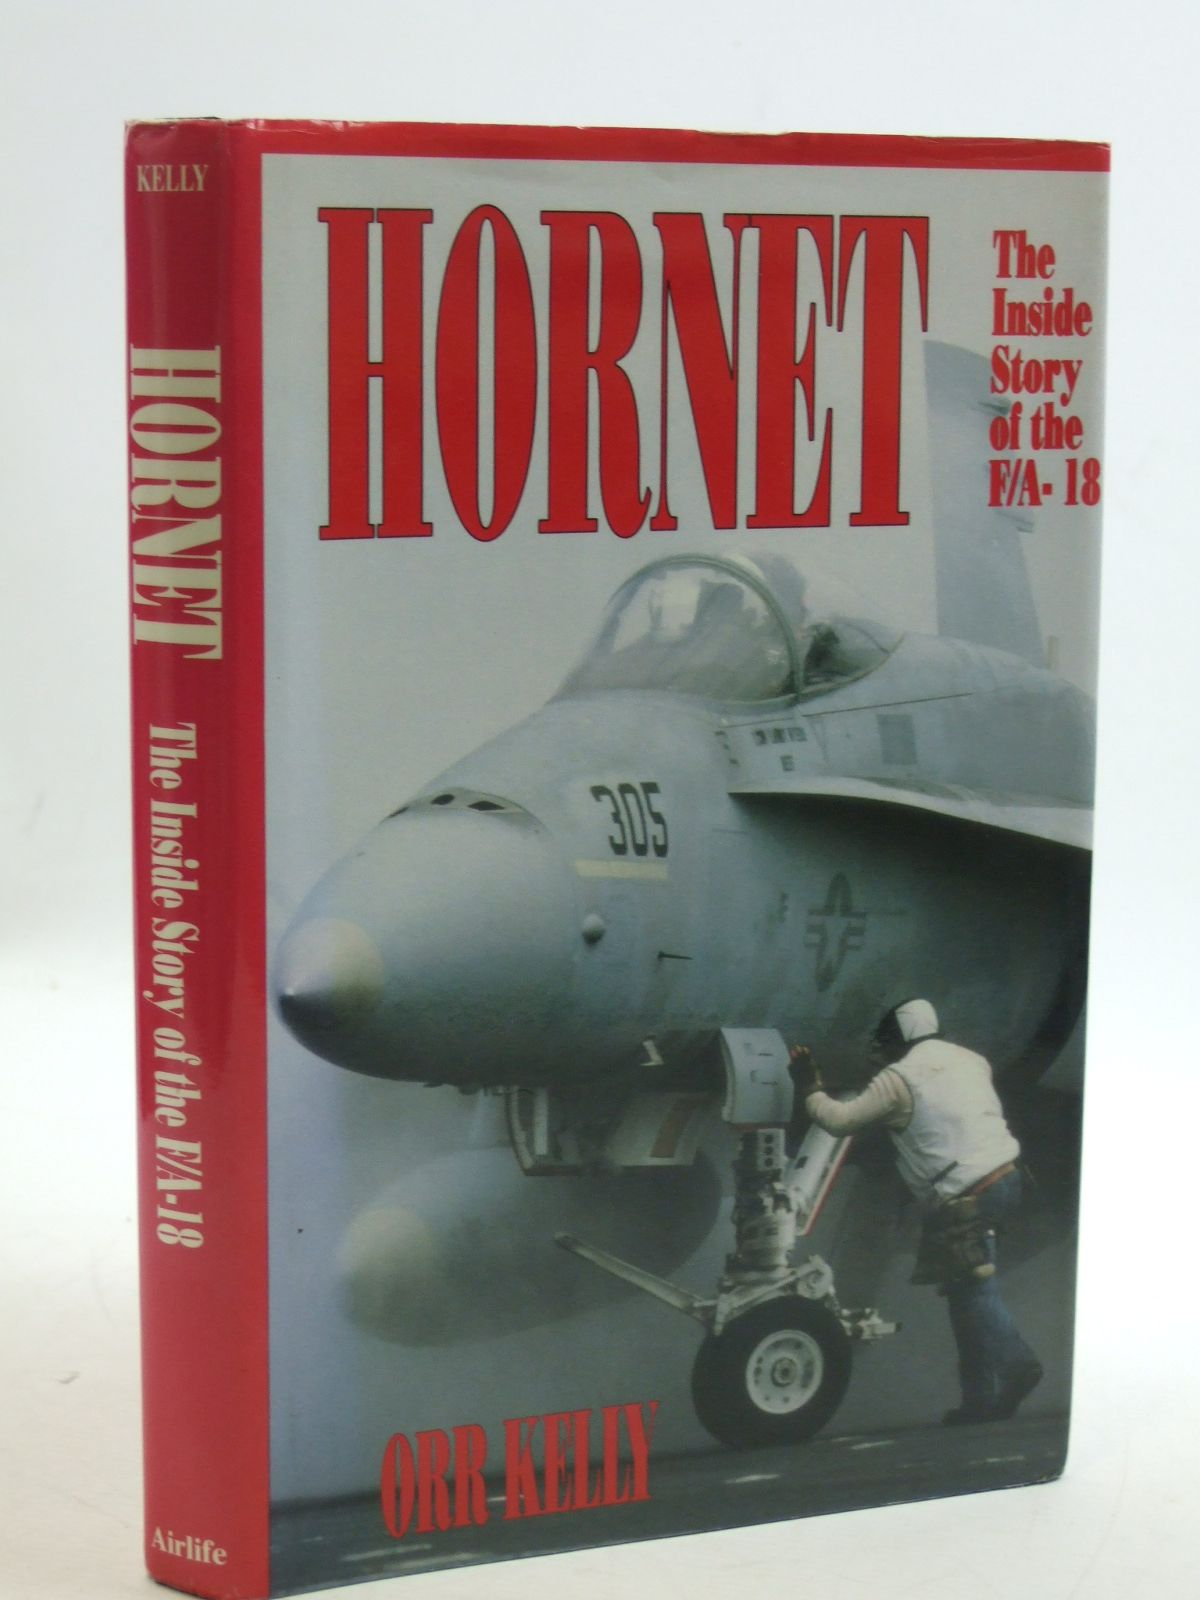 Photo of HORNET written by Kelly, Orr published by Airlife (STOCK CODE: 2109630)  for sale by Stella & Rose's Books